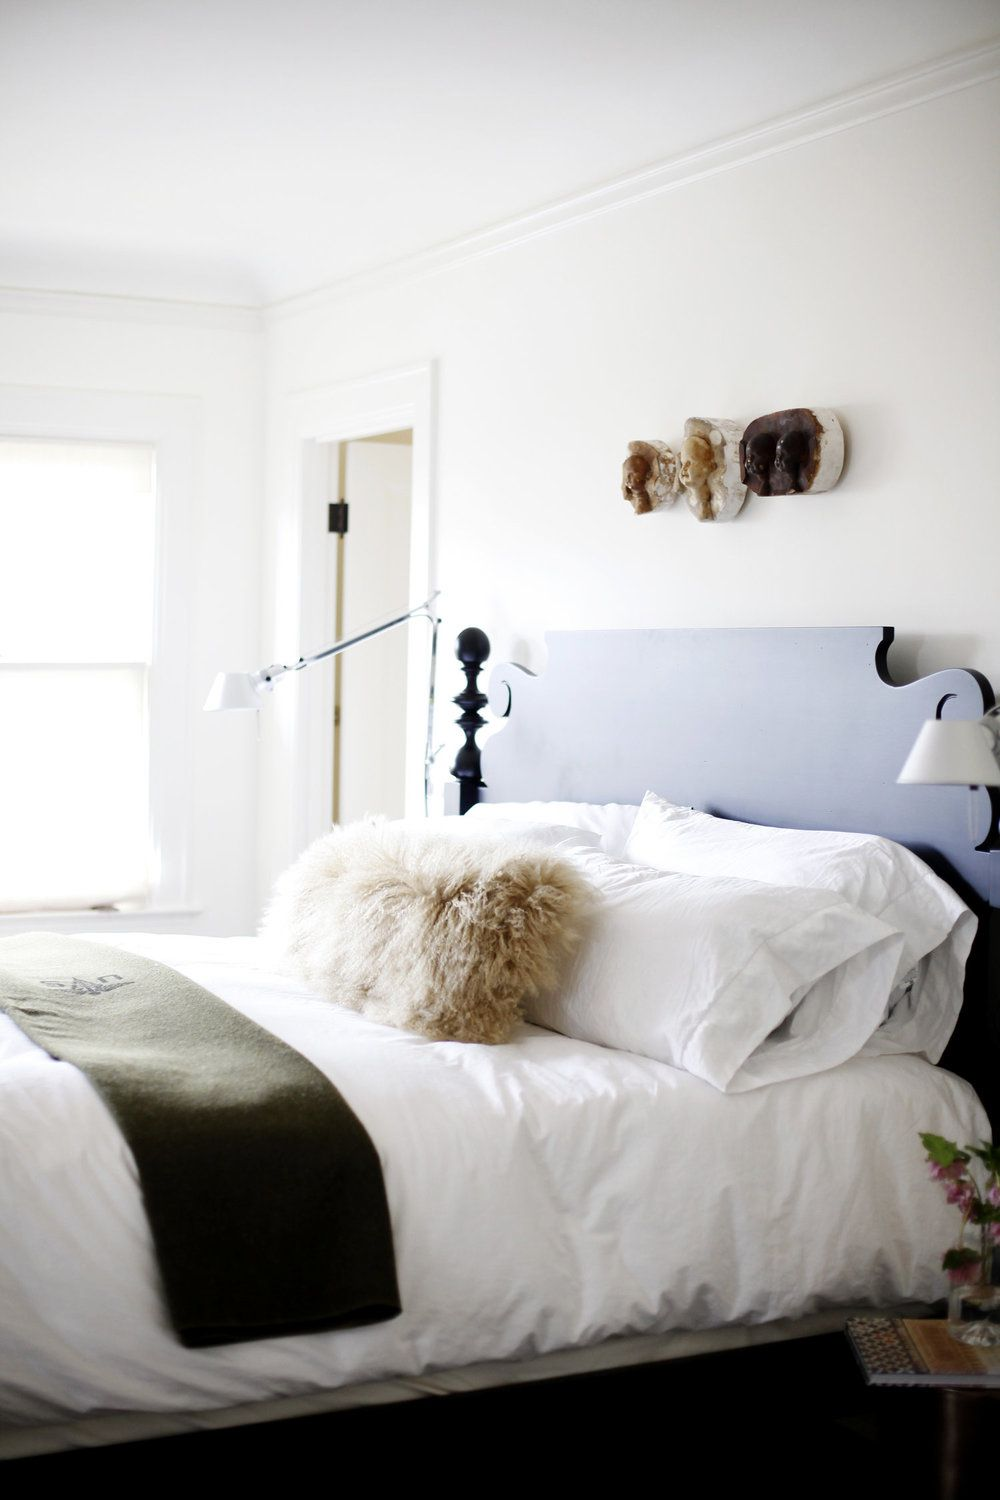 A white bed on a solid bedframe